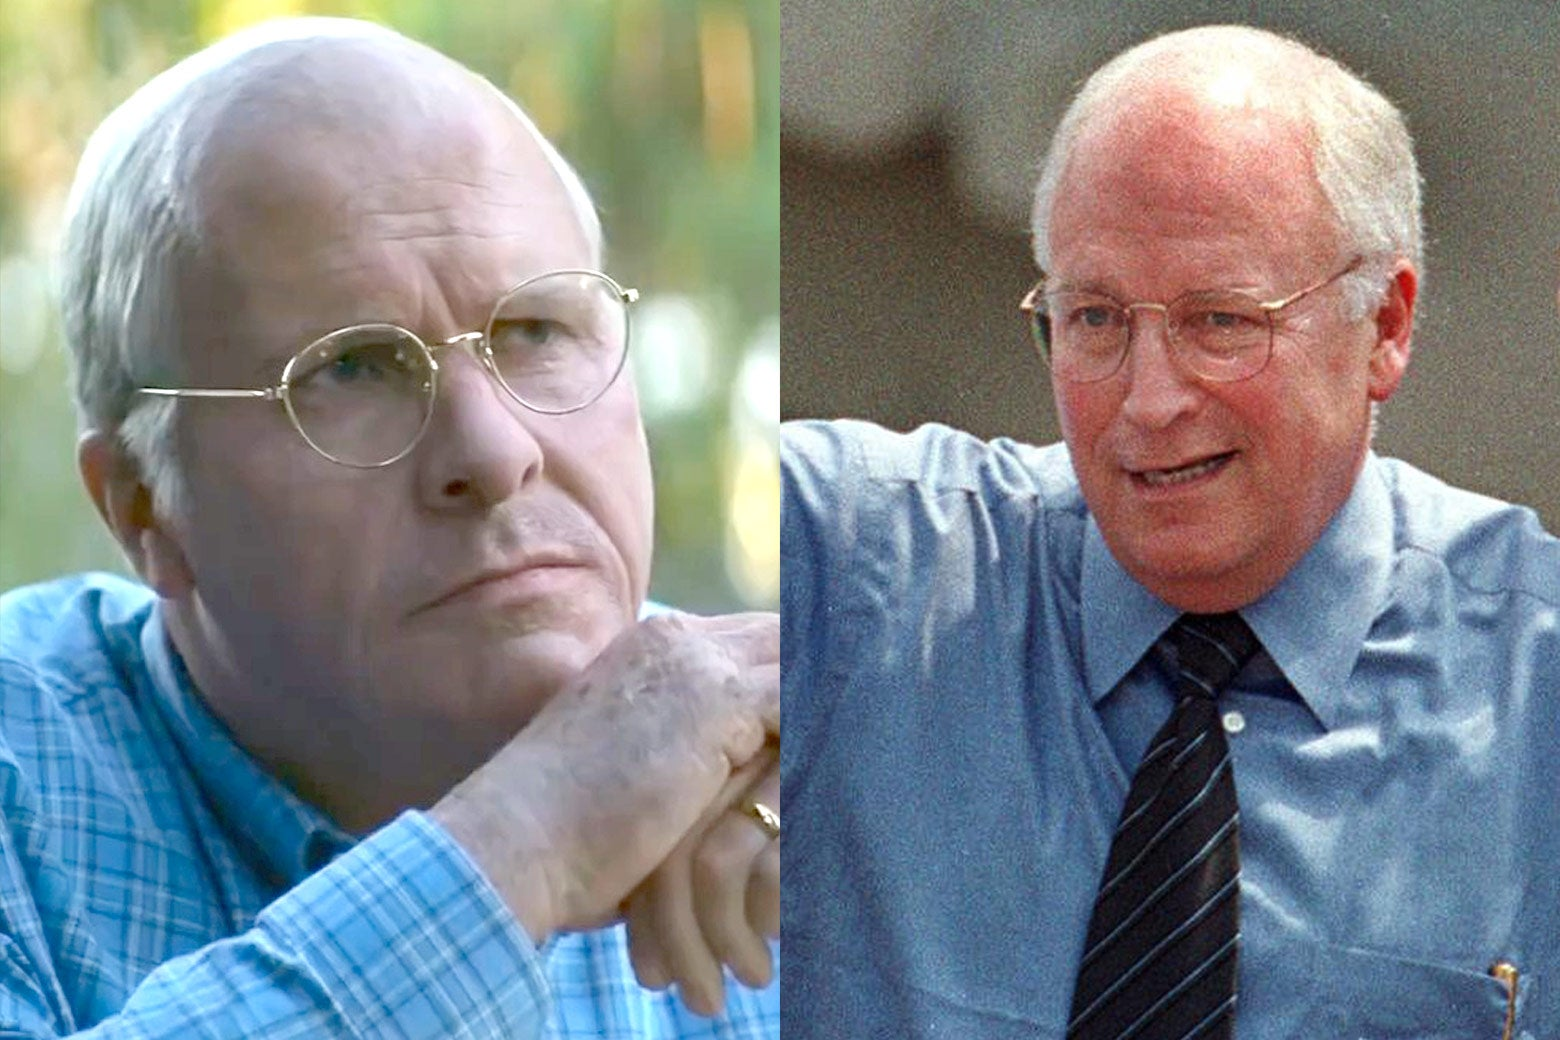 Side-by-side photos of Christian Bale as Dick Cheney, and Dick Cheney as seen in 2000.